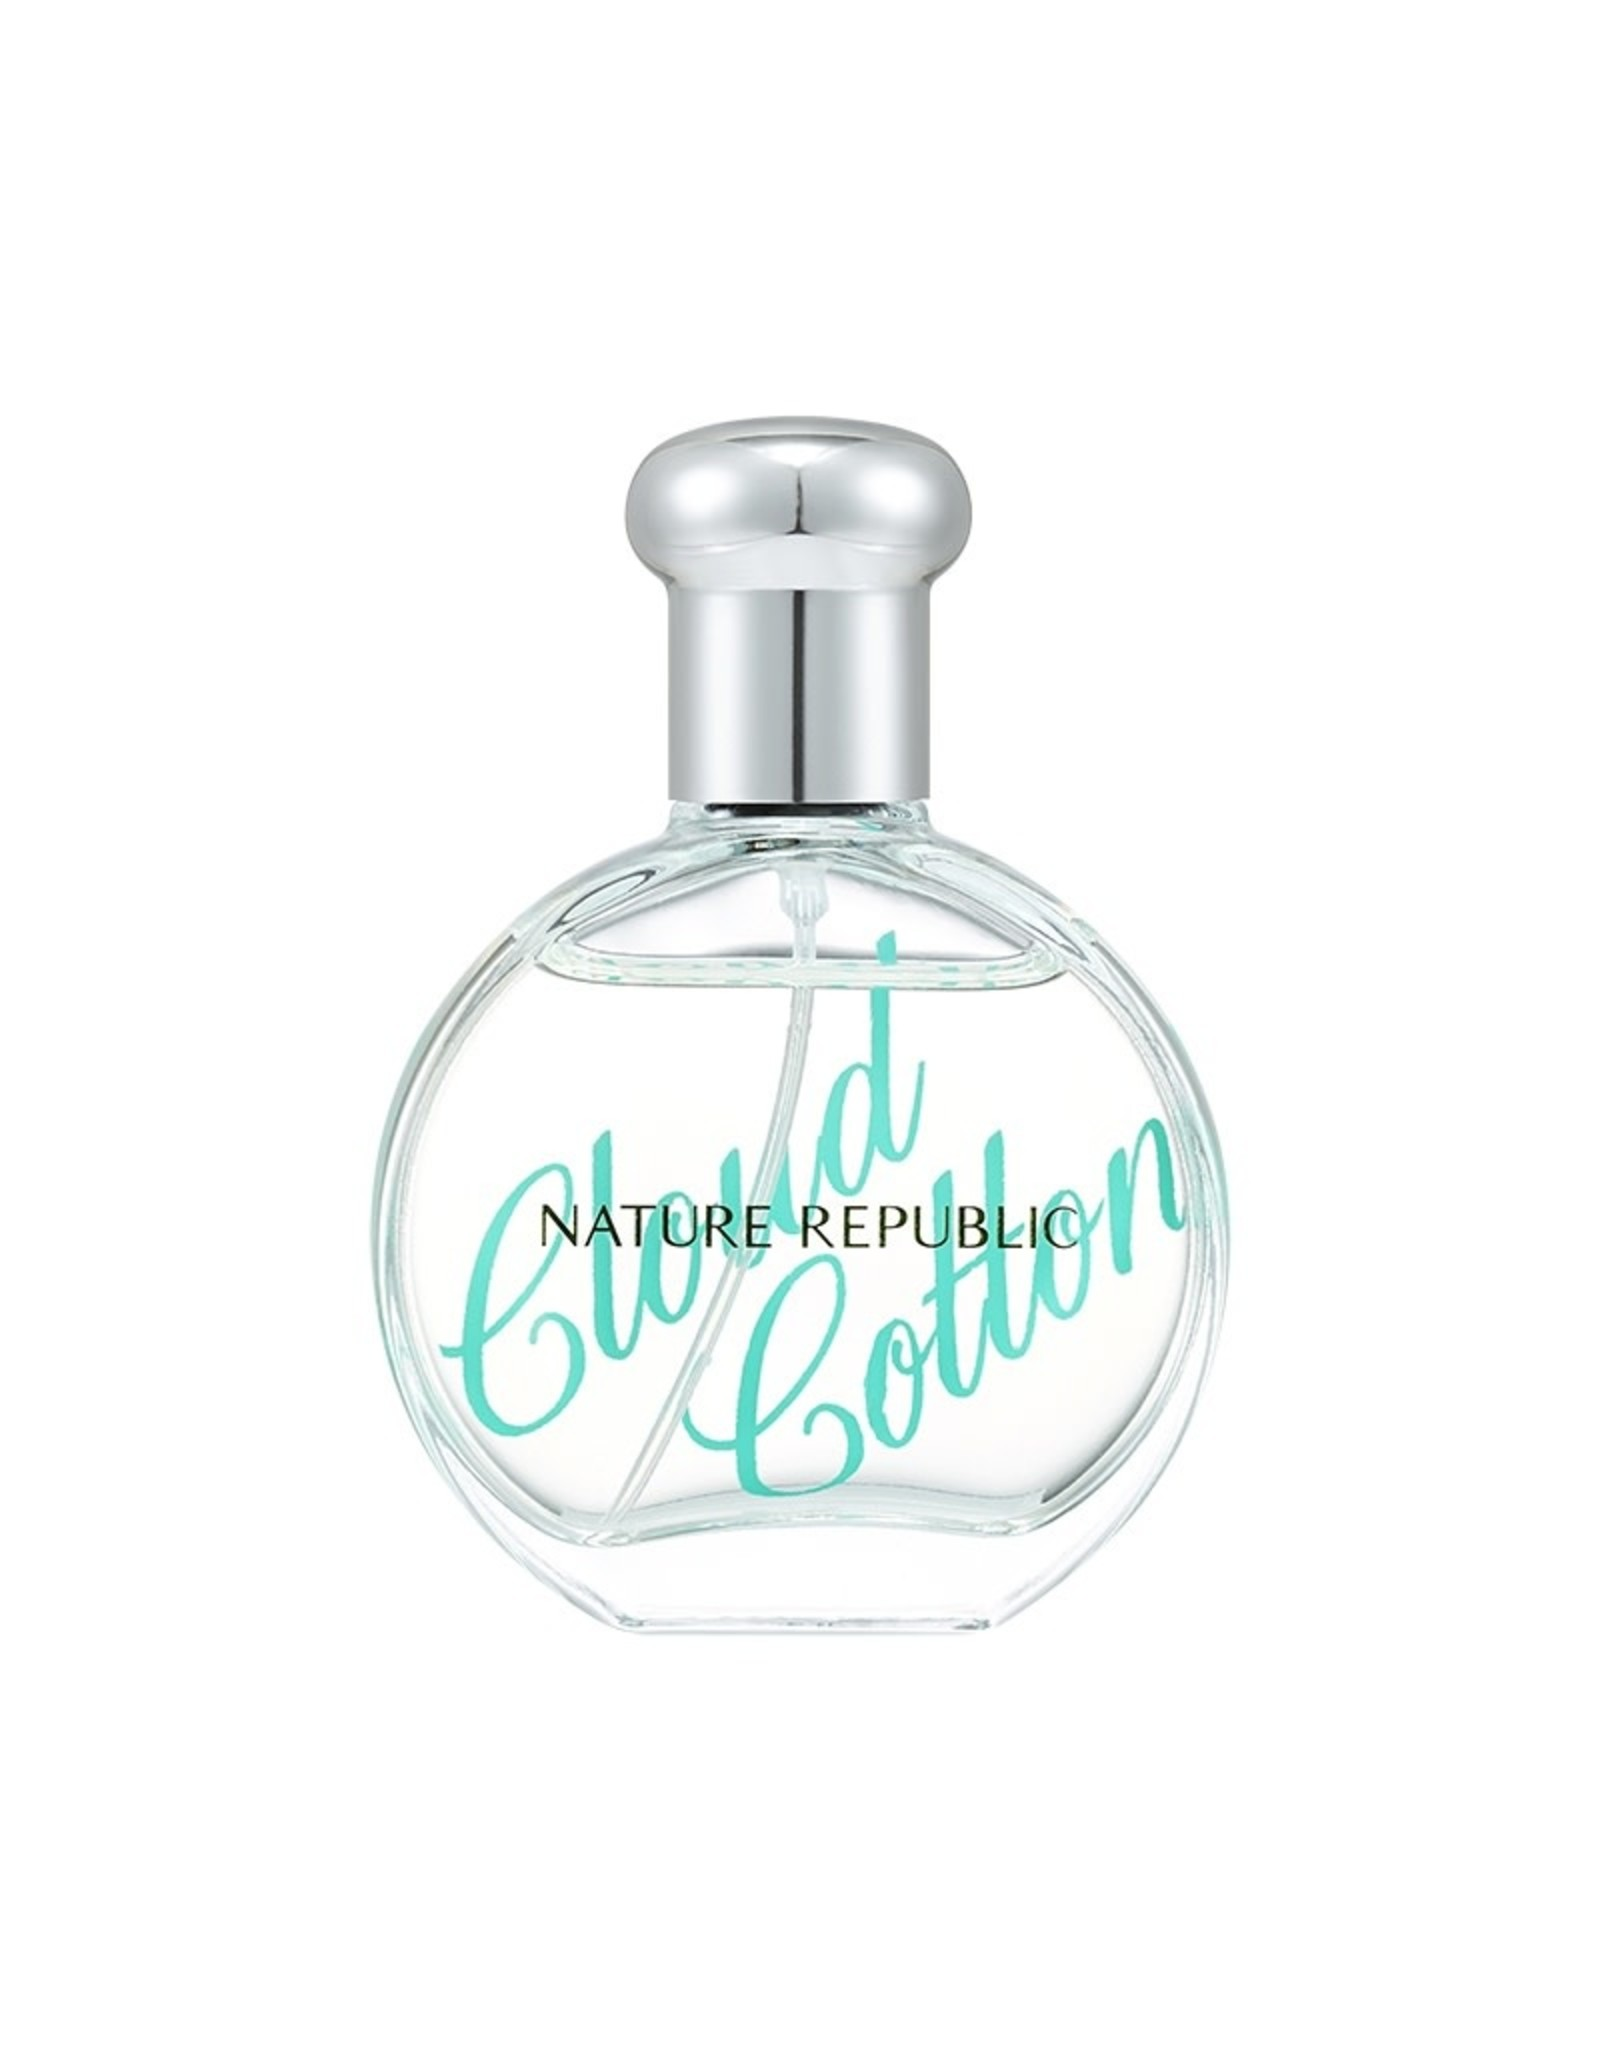 Perfume De Nature Eau De Parfum Cloud Cotton